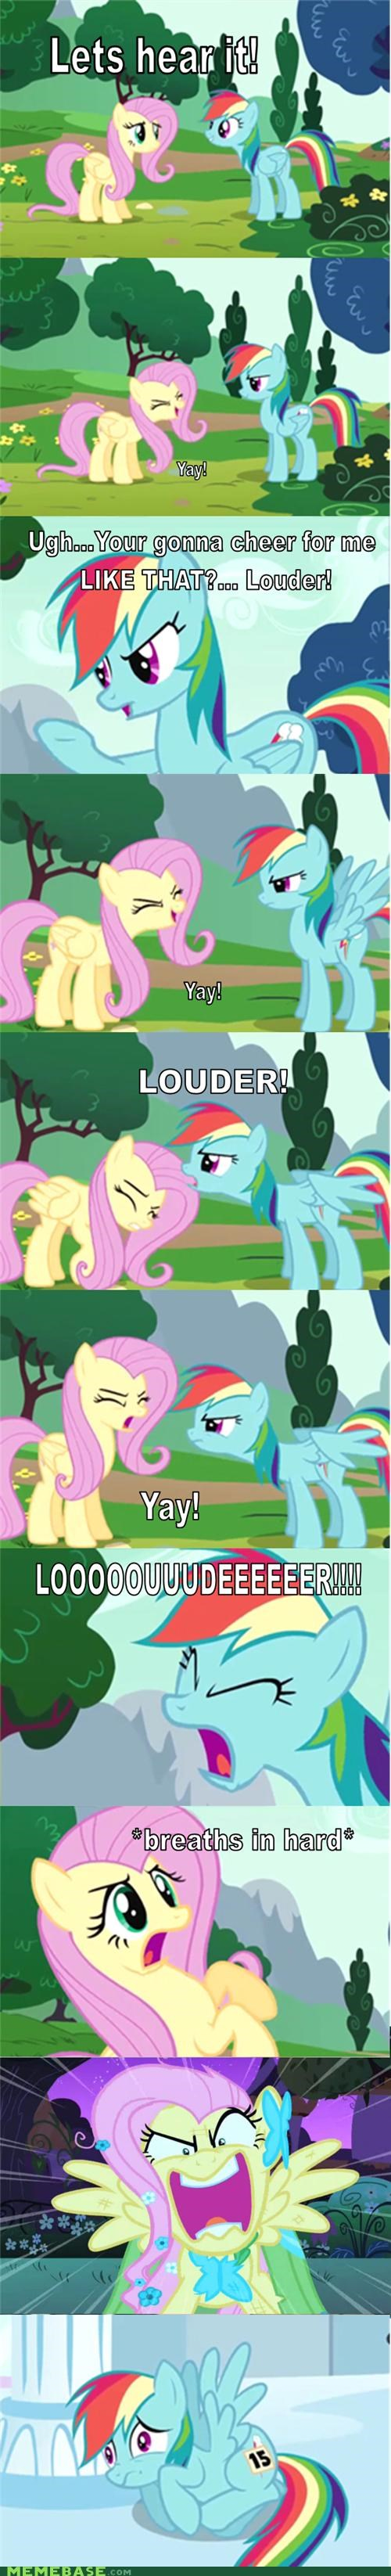 best of week comic comics fluttershy louder rainbow dash yay - 5173828096